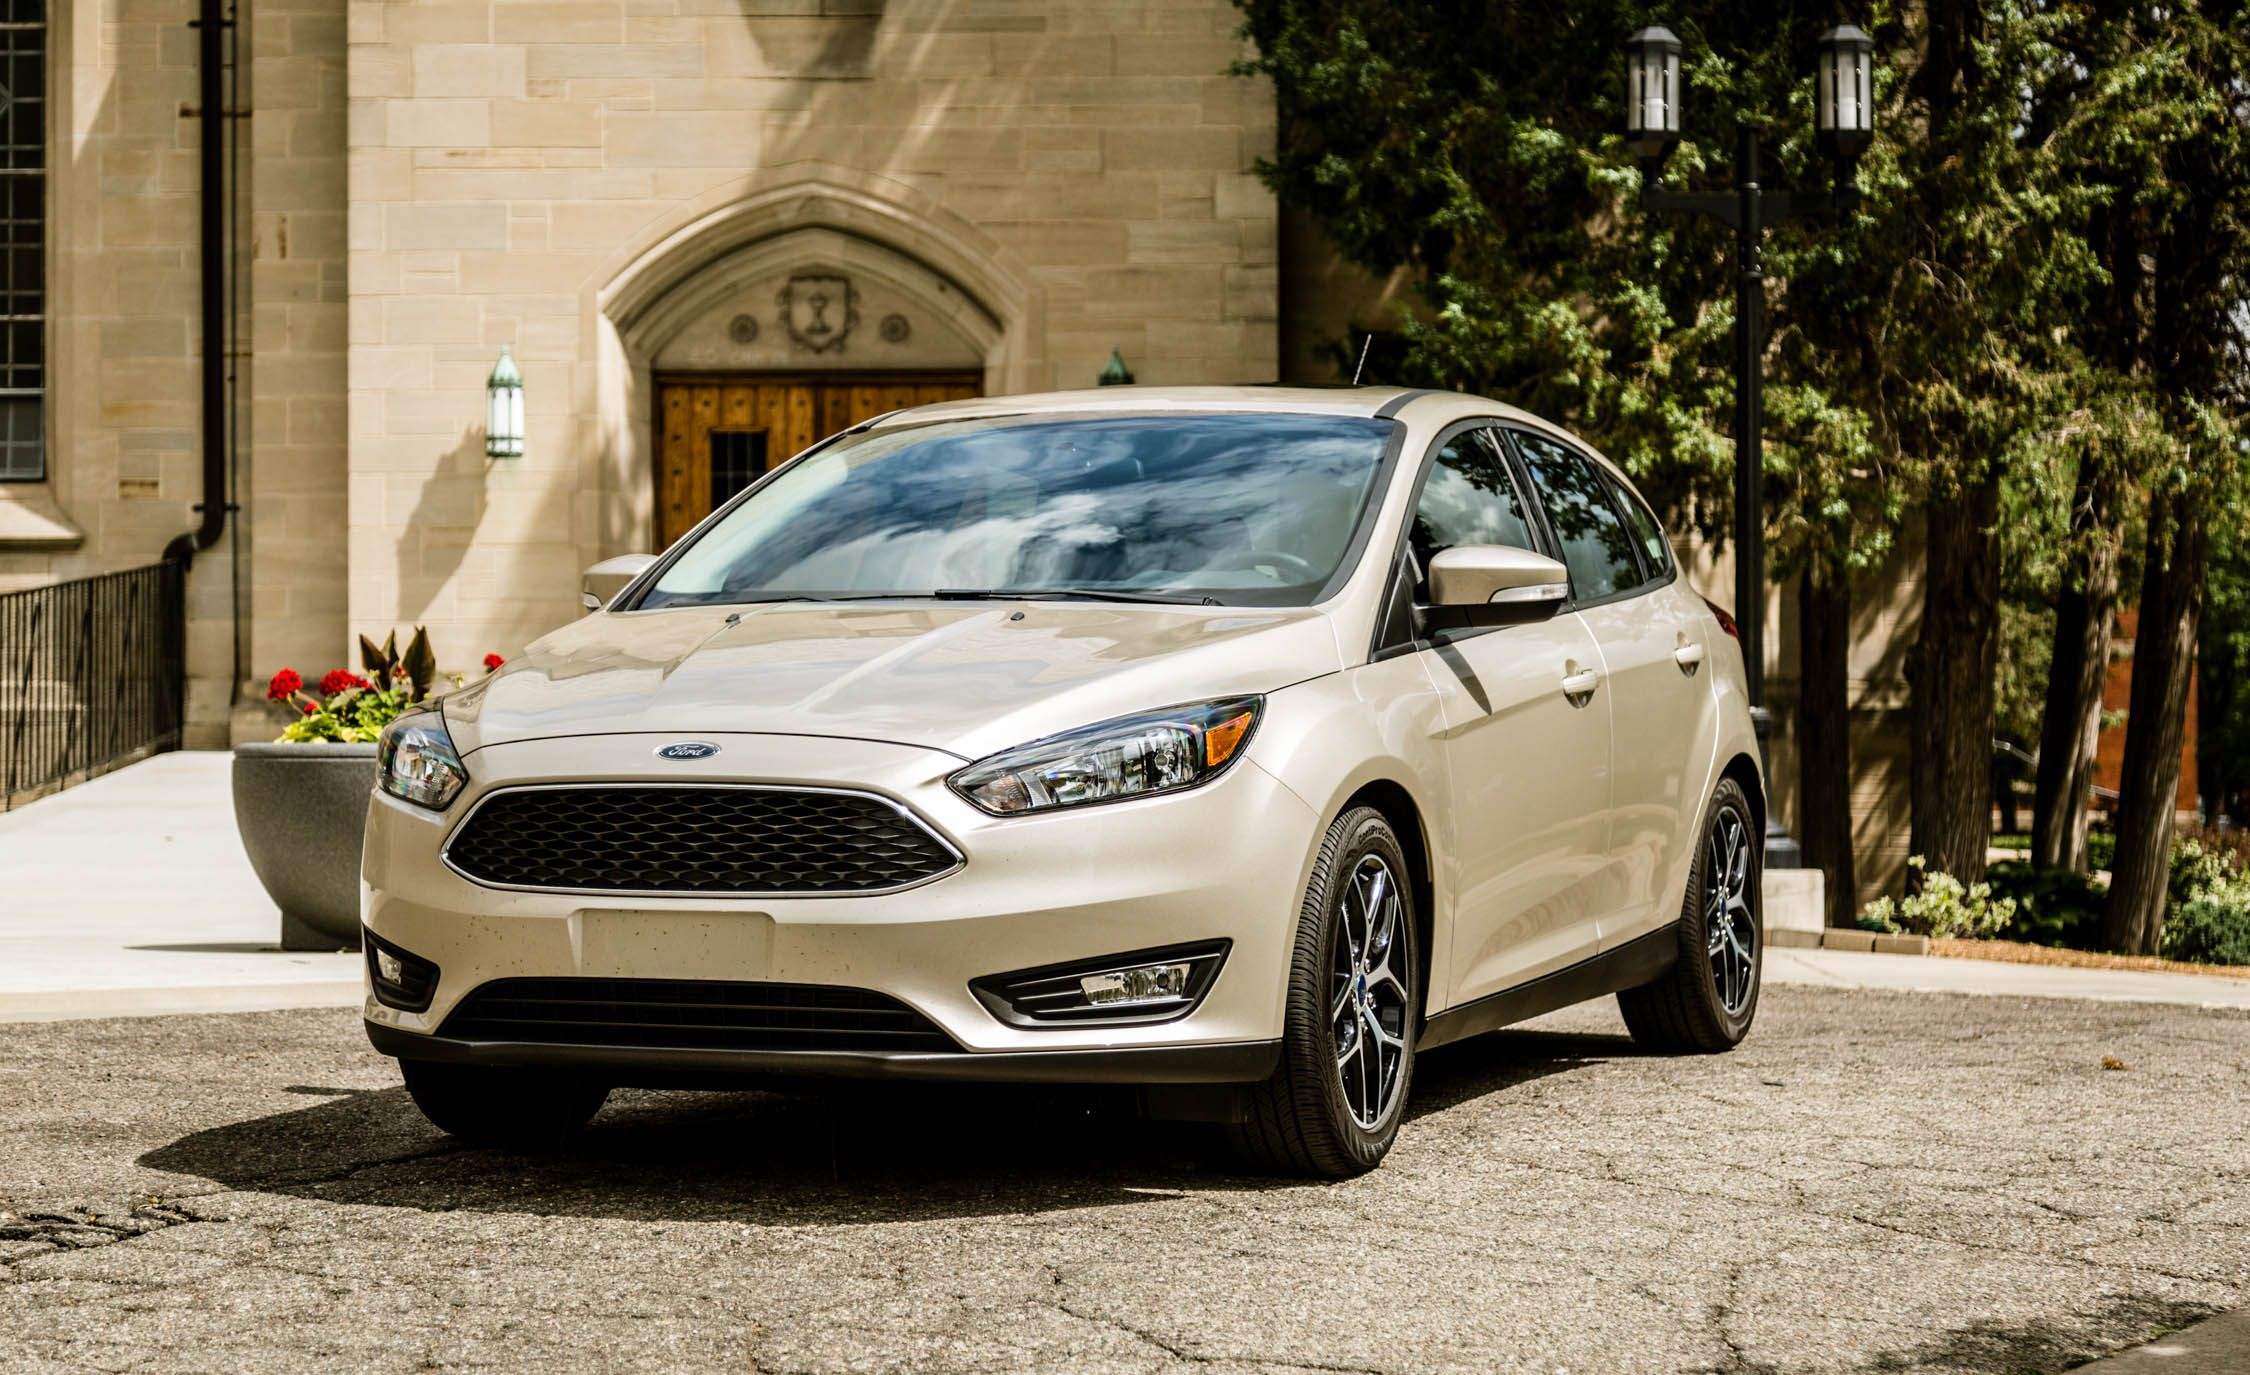 Ford Focus Reviews Ford Focus Price s and Specs